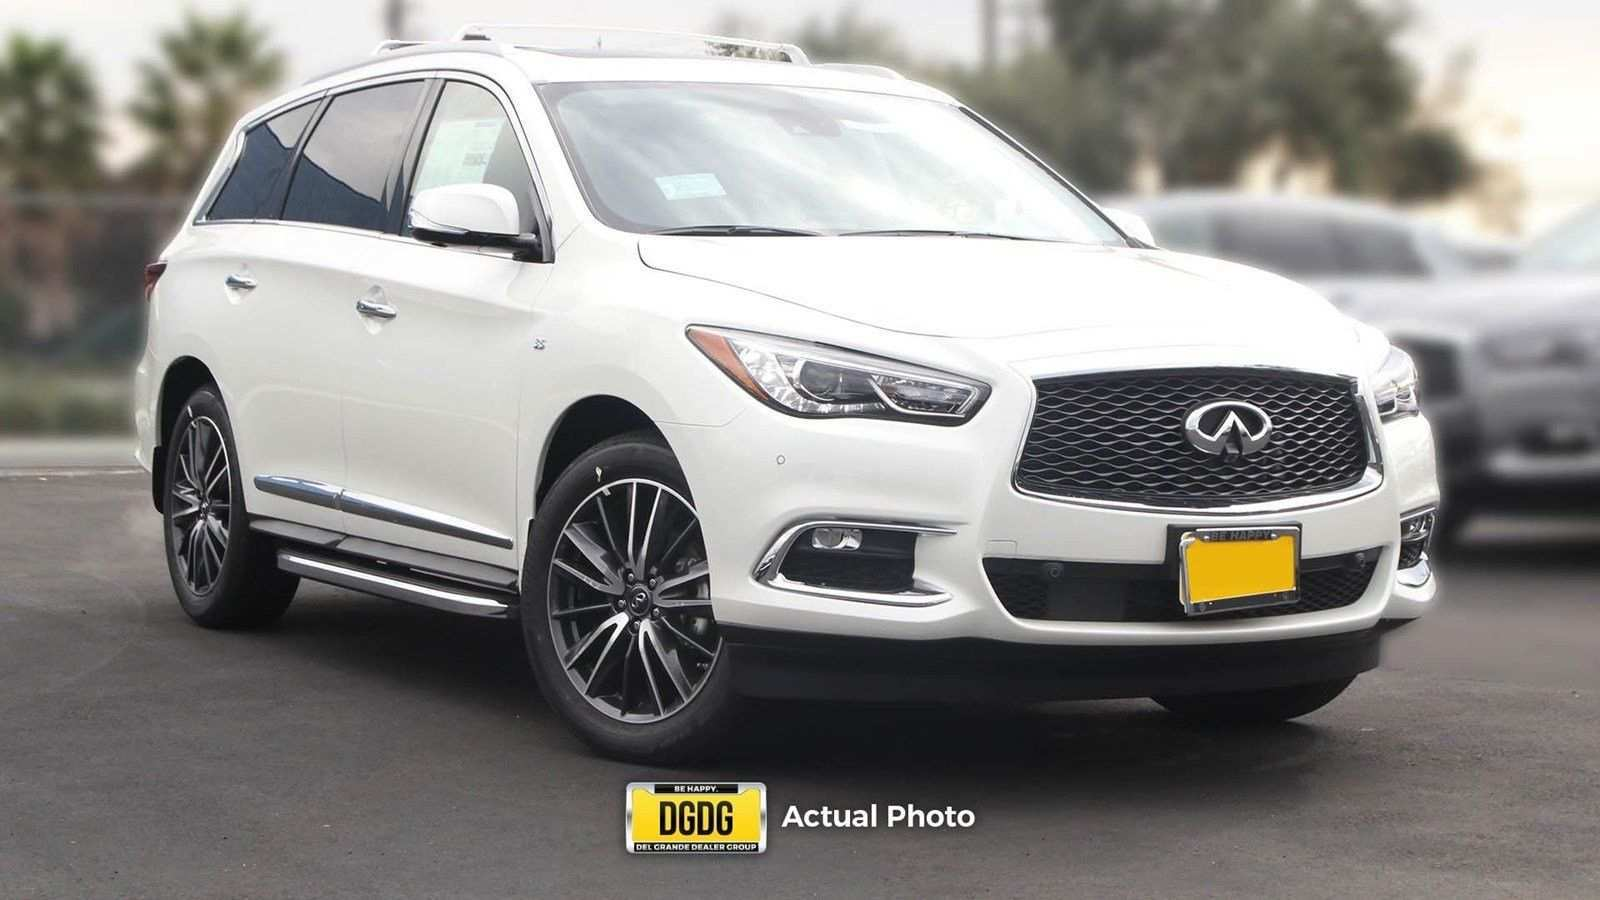 92 New 2020 Infiniti Qx60 Review for 2020 Infiniti Qx60